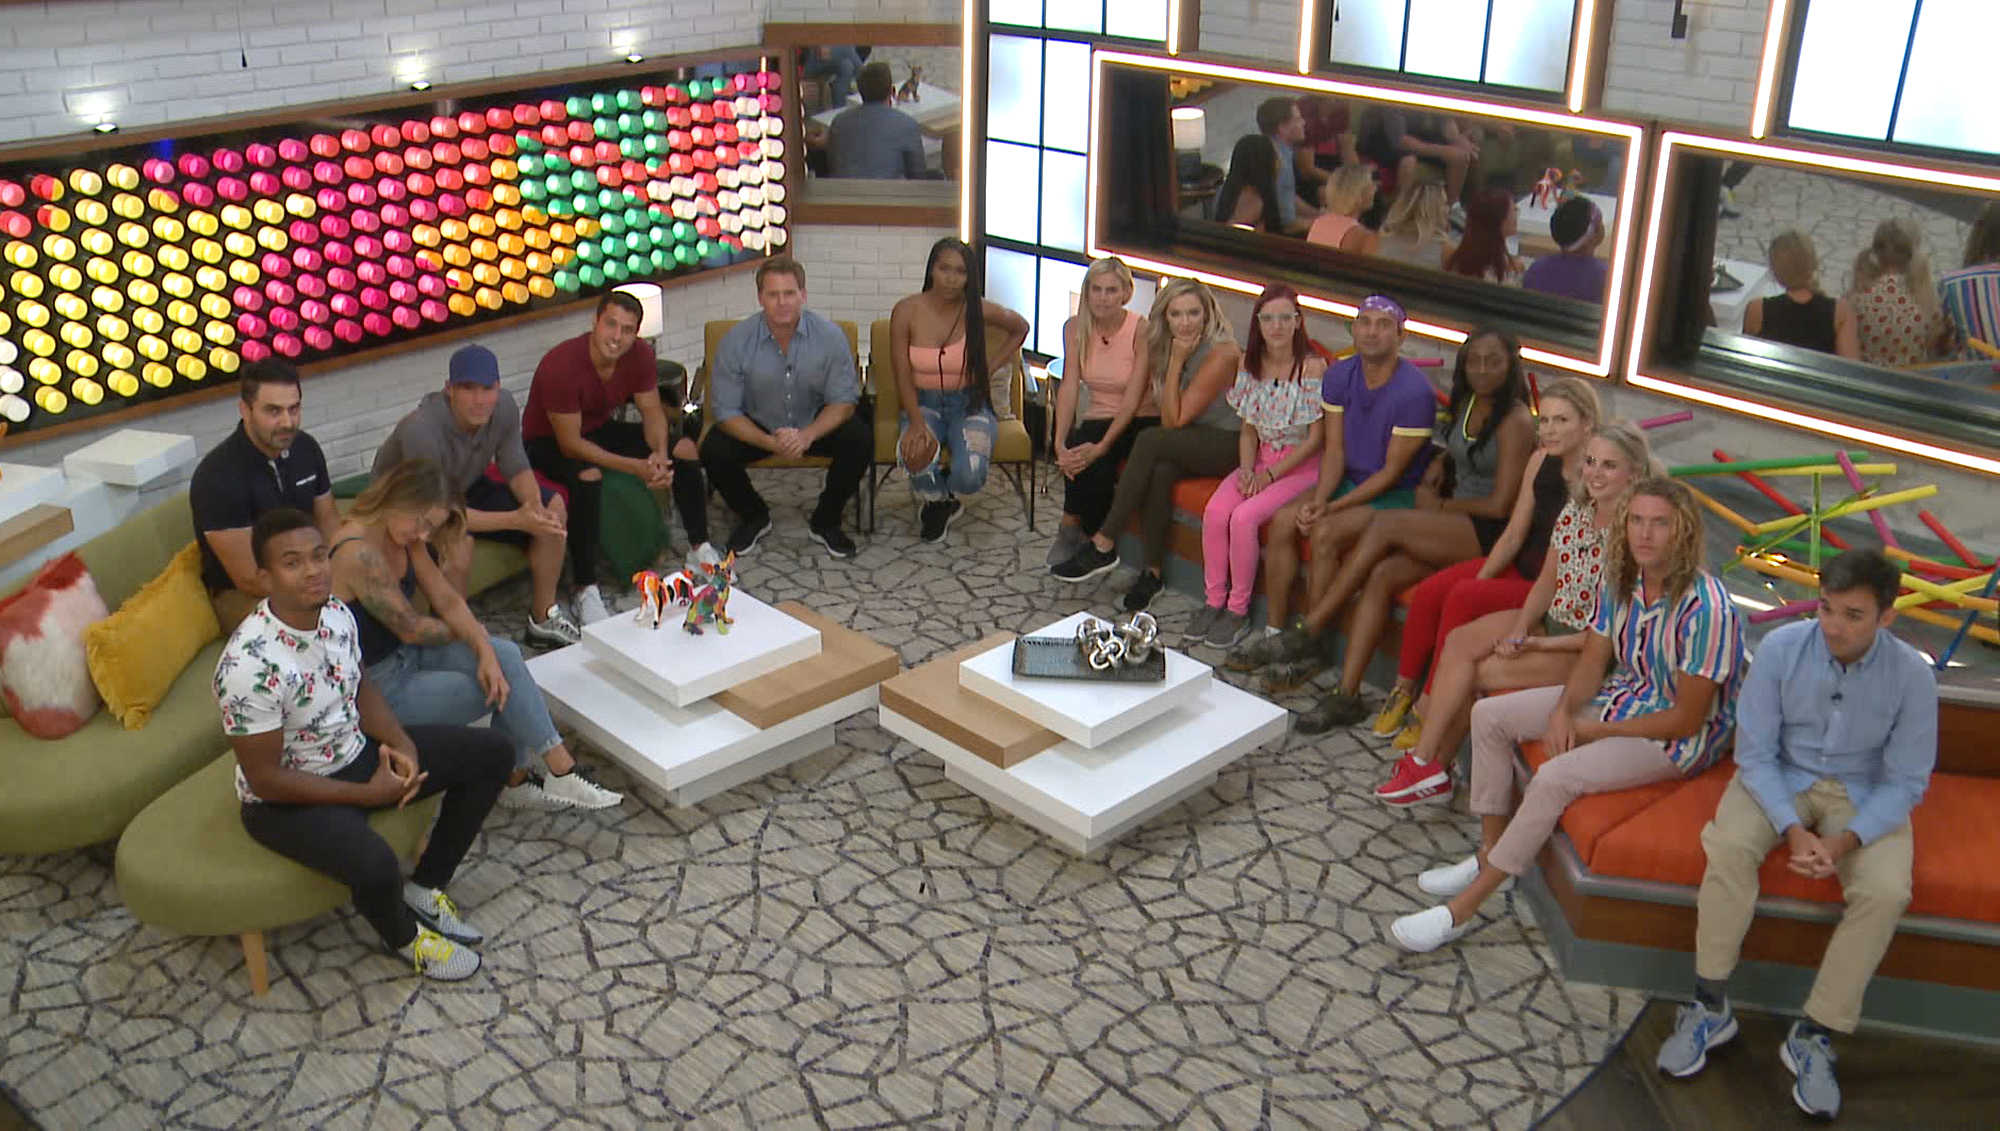 BIG BROTHER, the All-Star cast is revealed as they move into the house, during the two-hour live event: Wednesday, August 5